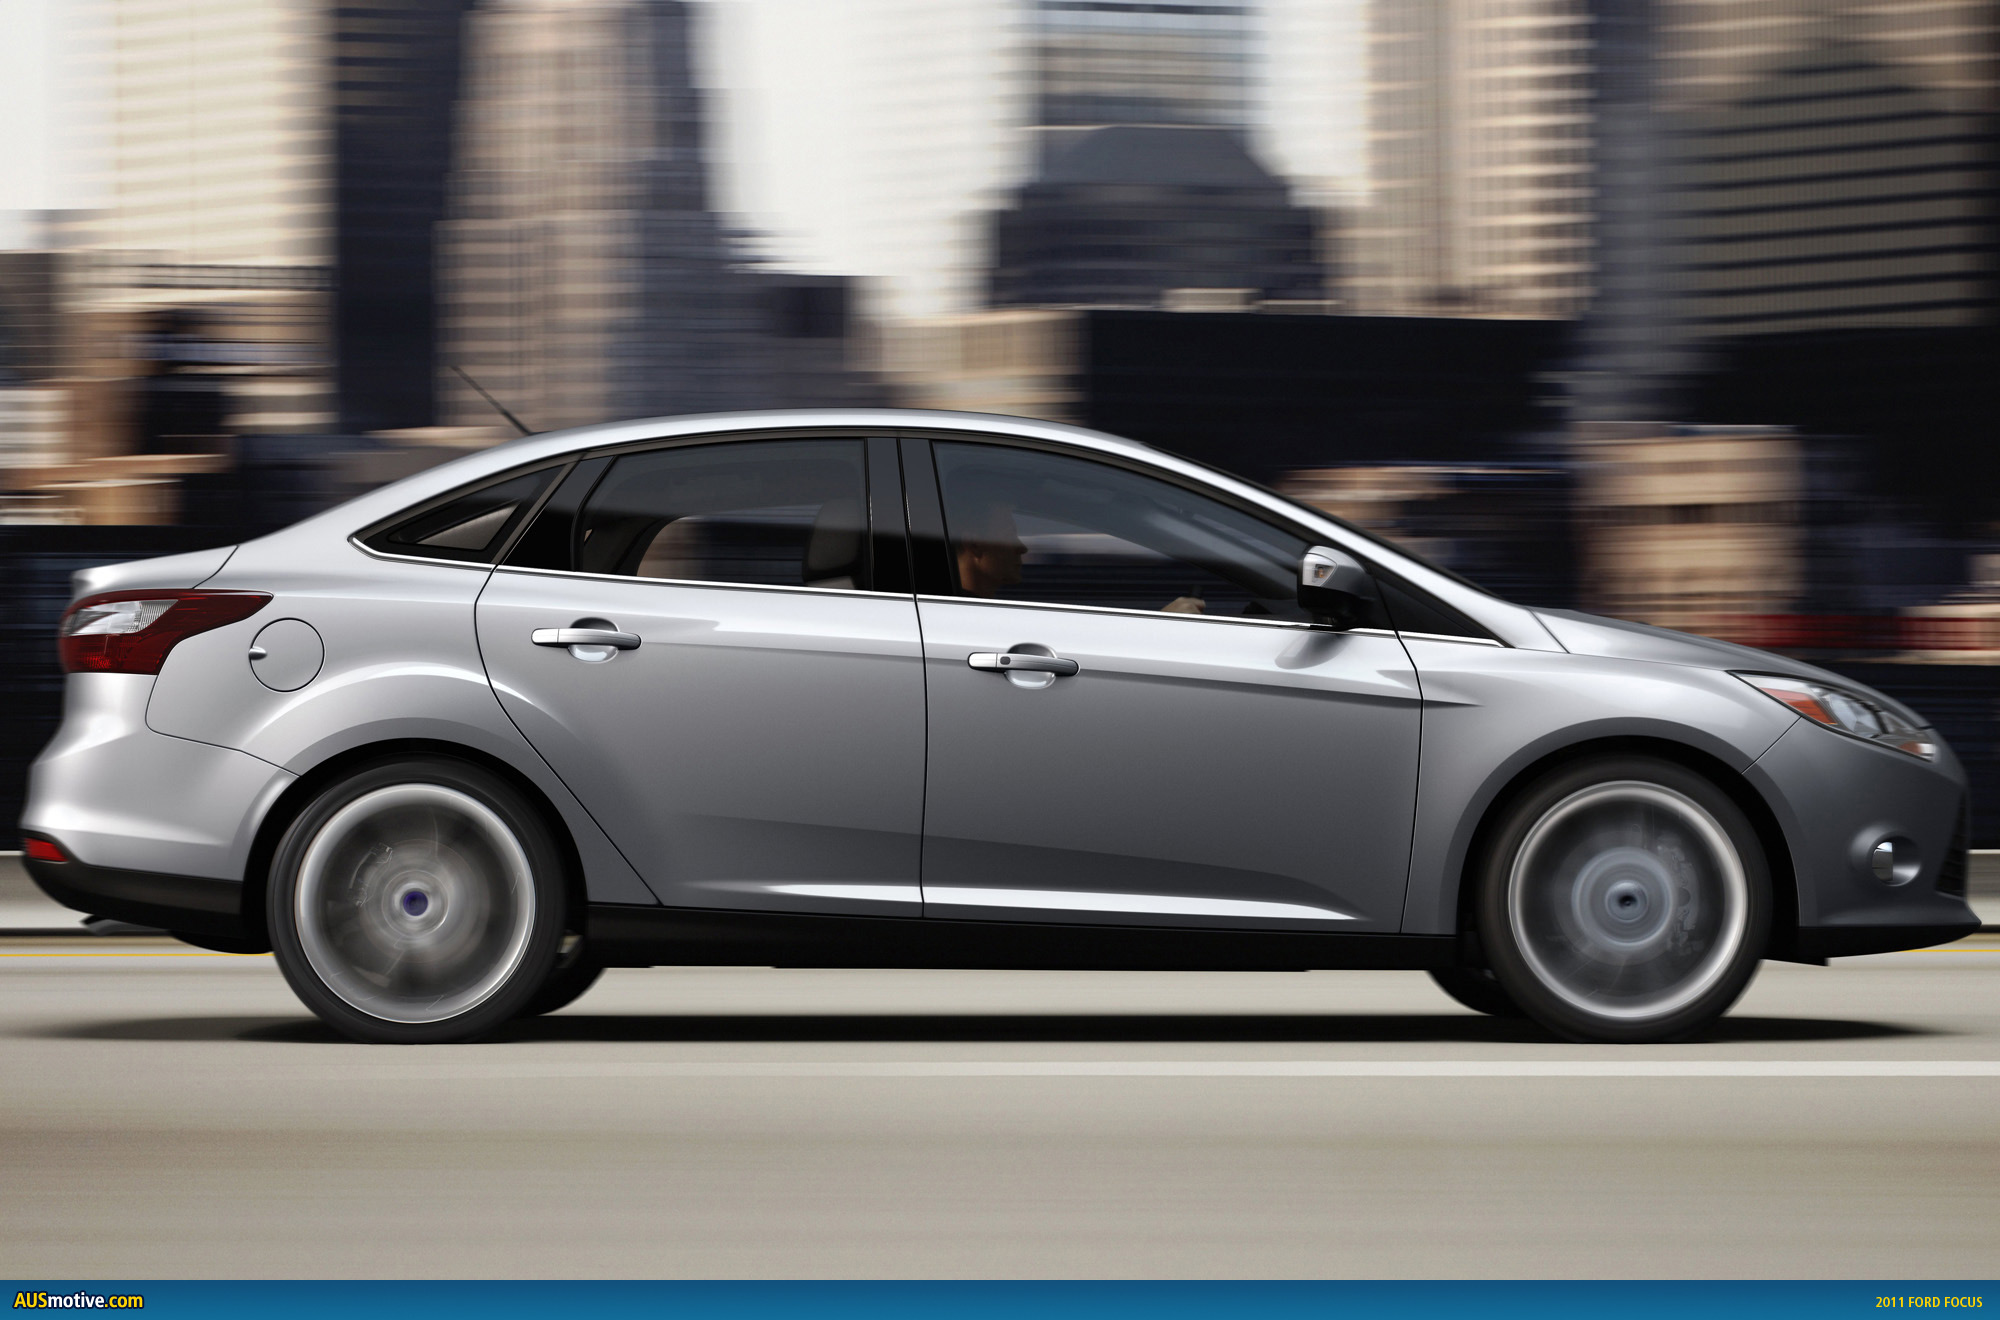 2011 ford focus studio - photo #18